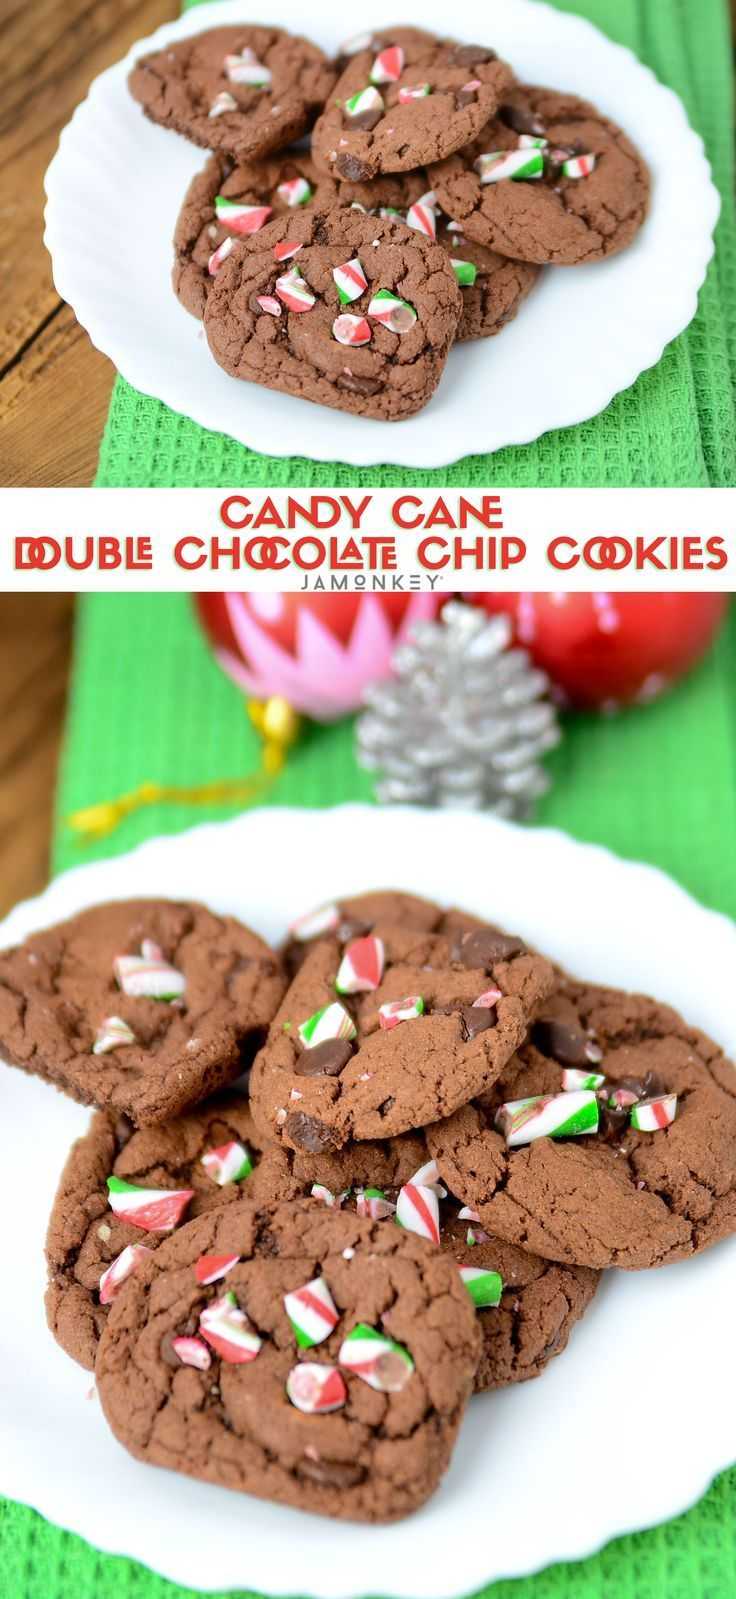 Candy Cane Double Chocolate Chip Cookies